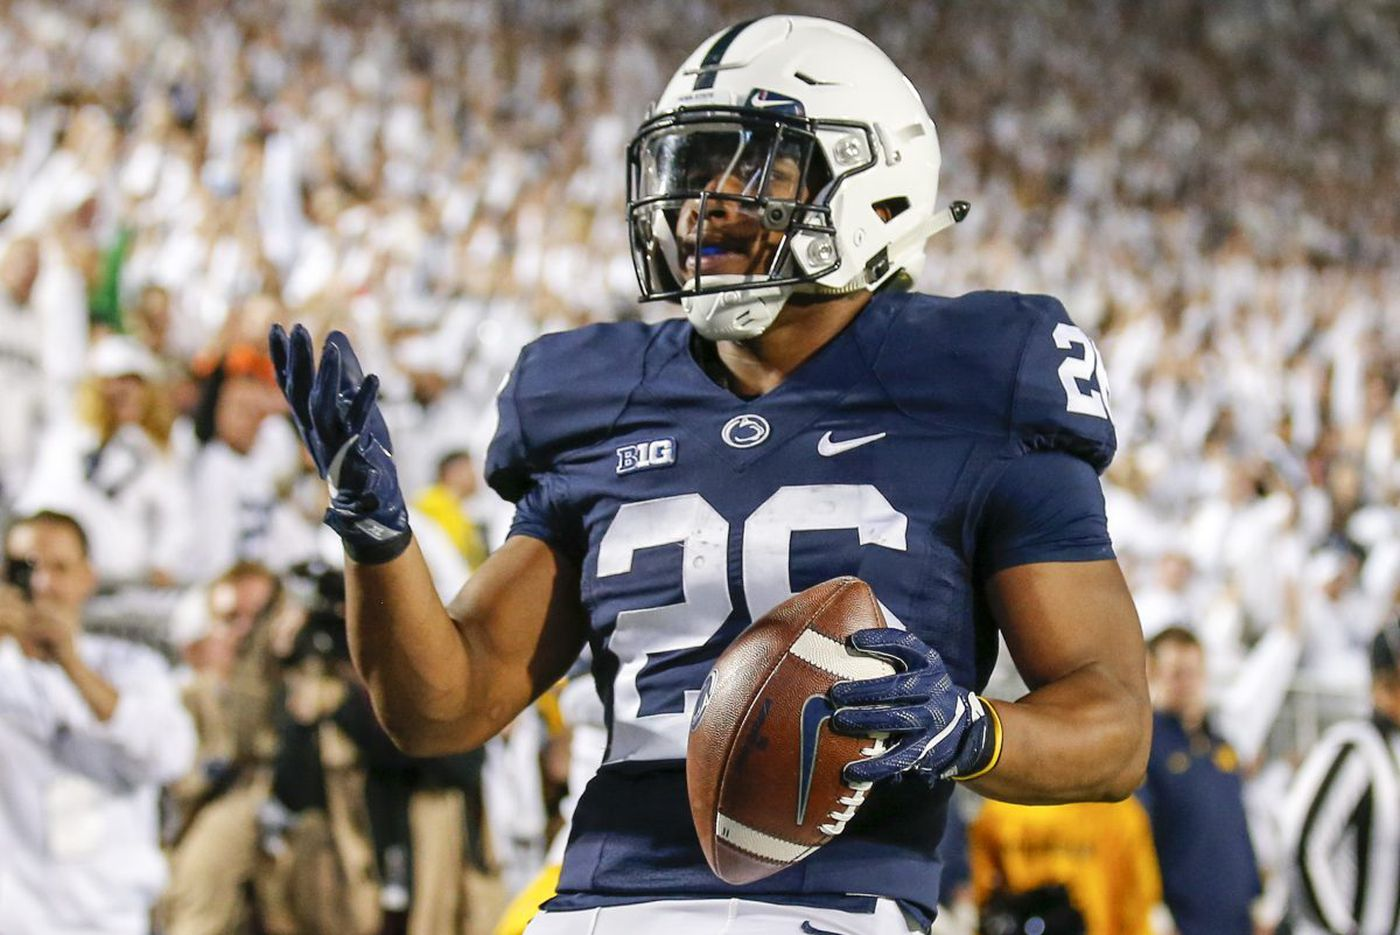 Penn State retains No. 2 ranking in Associated Press poll